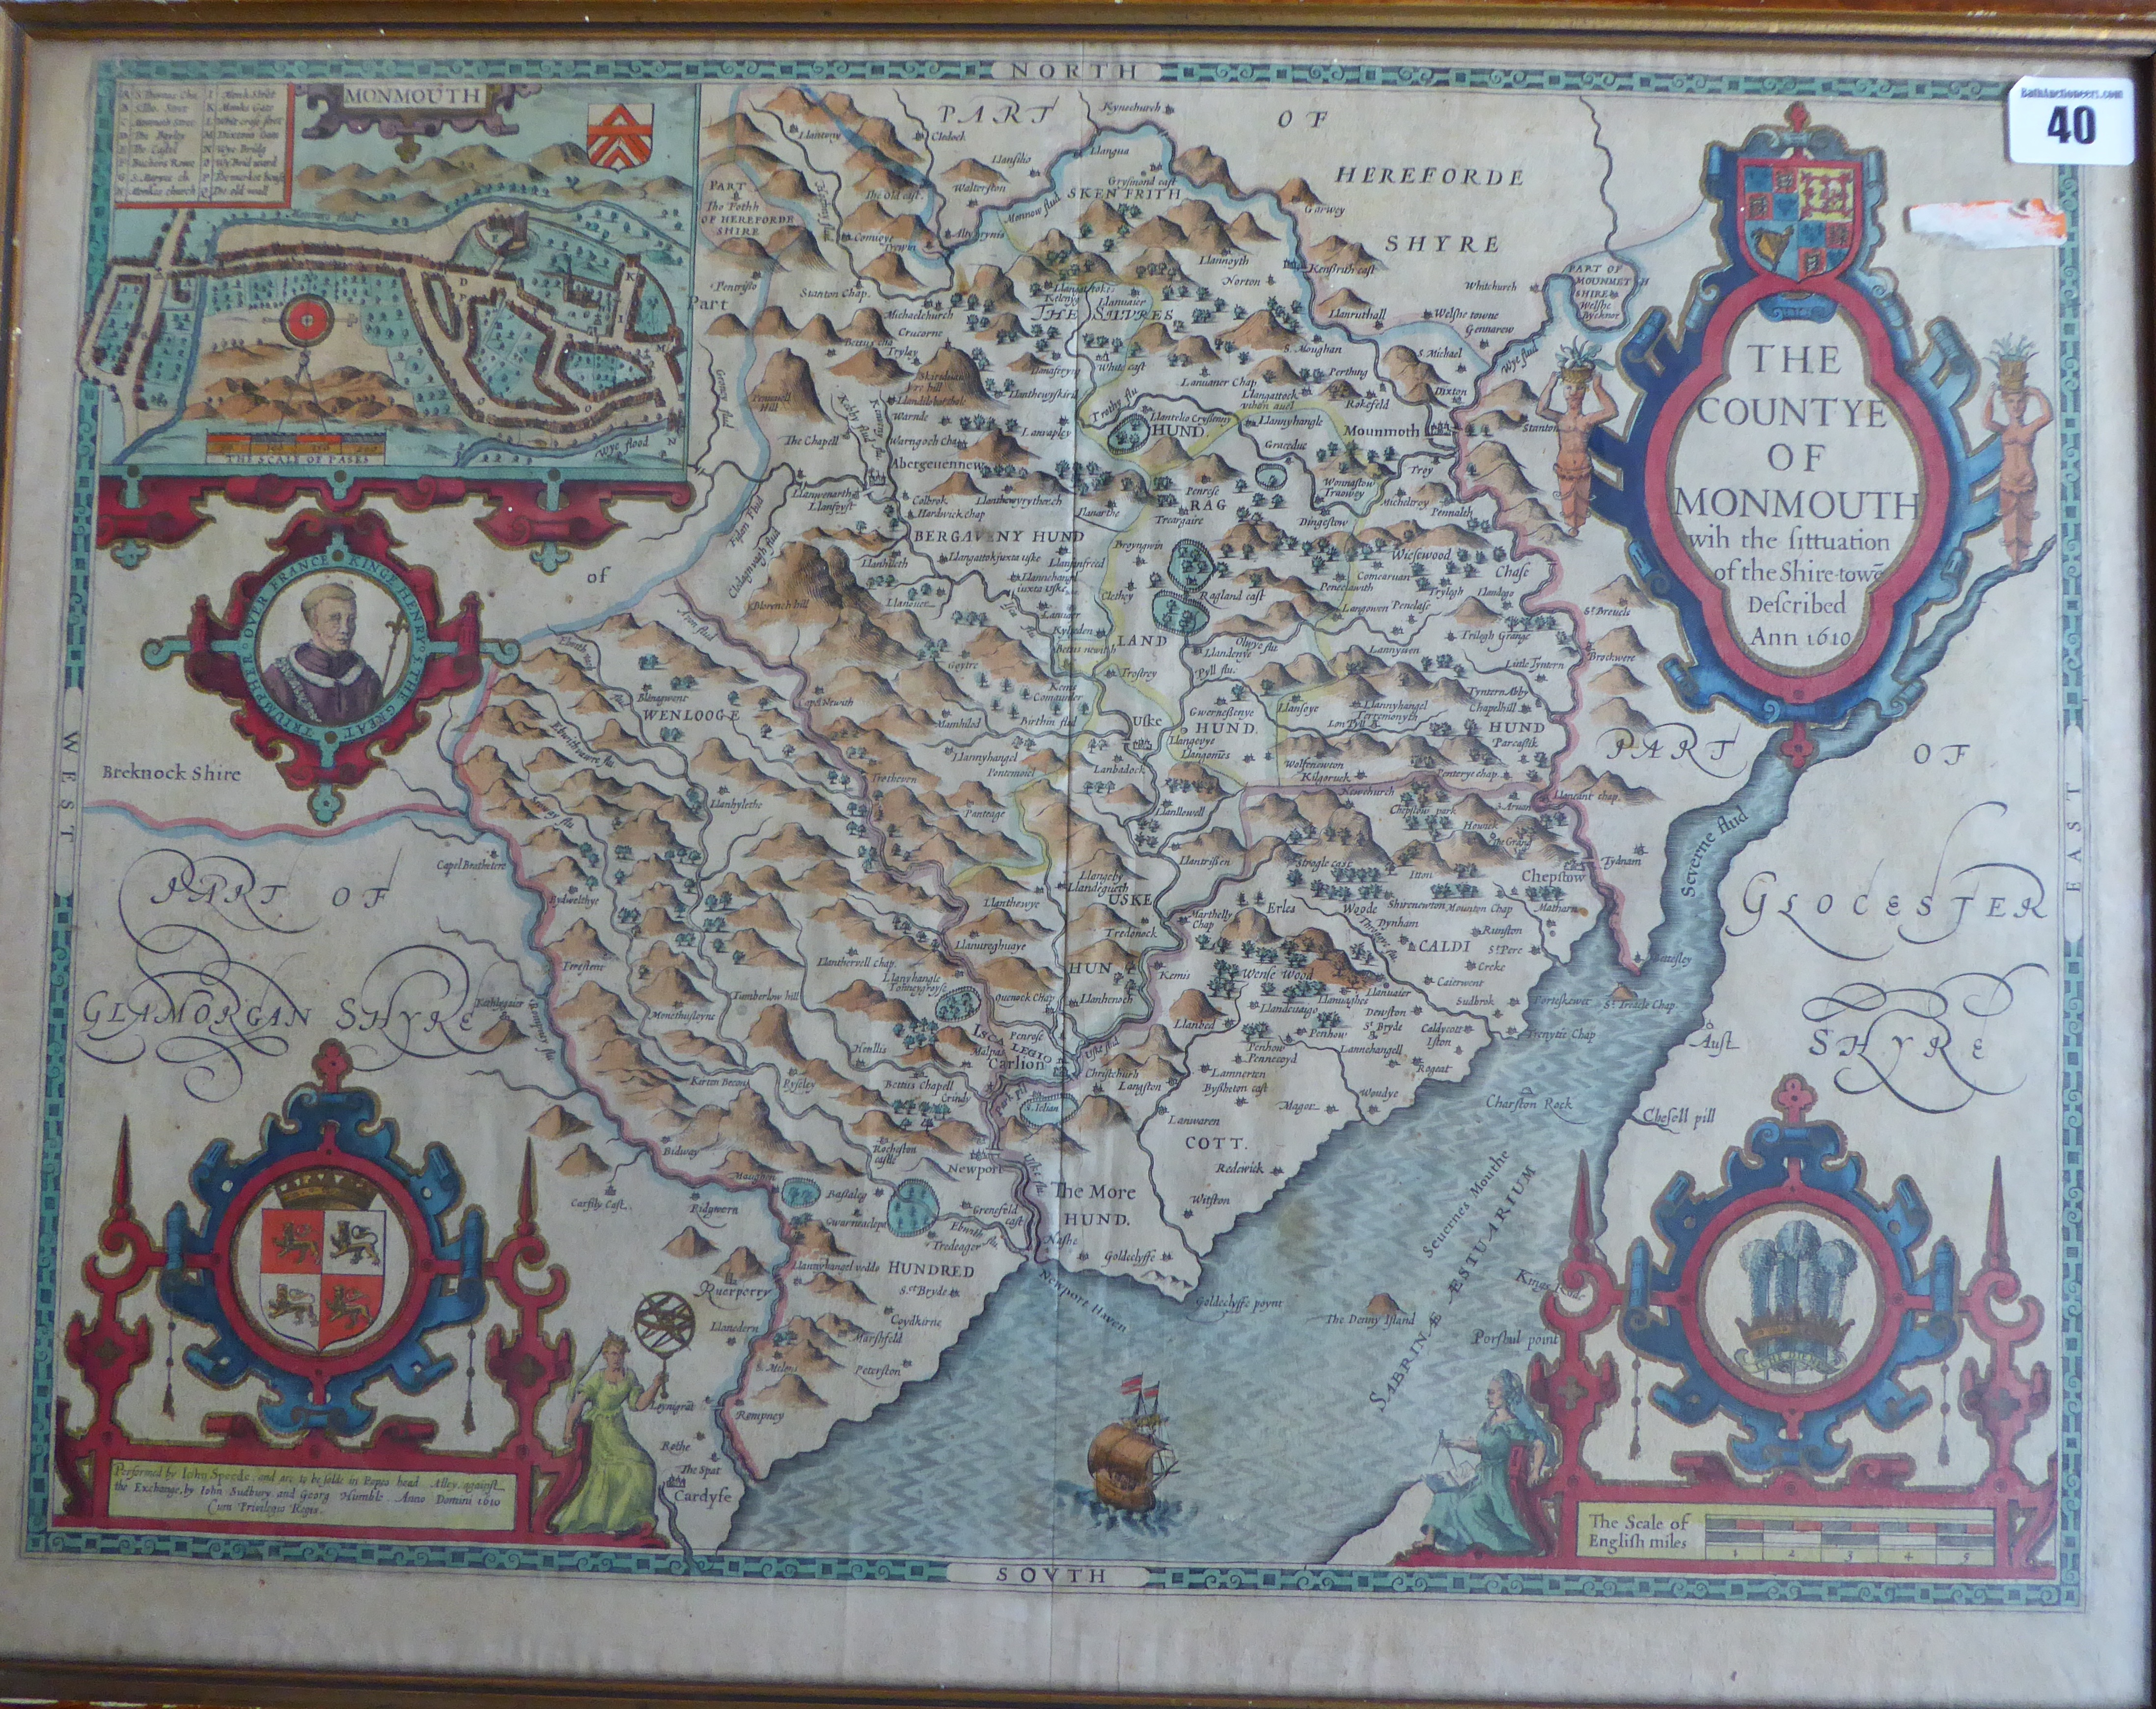 Lot 40 - A C17th hand coloured copper engraved map of Monmouth 1612 edition by John Speed